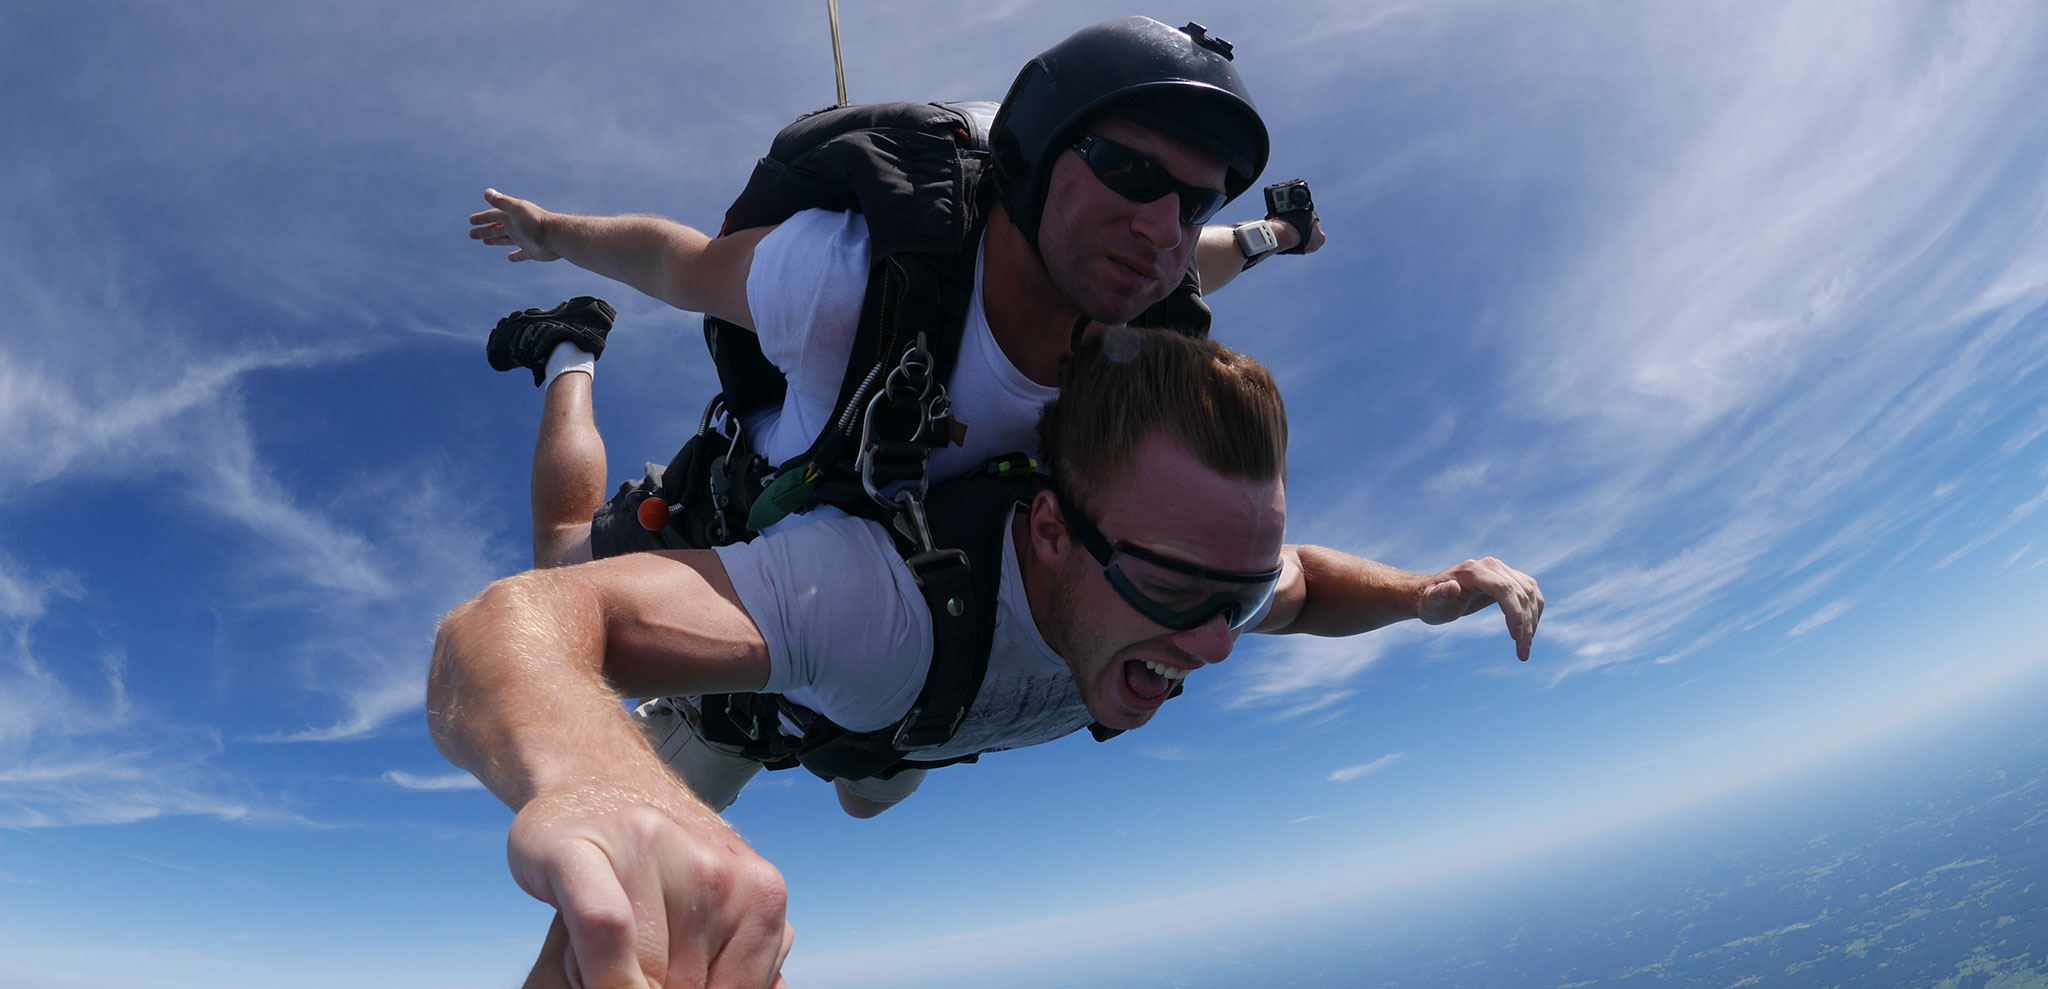 Believe it! This is why Skydive Atlanta is the best tandem